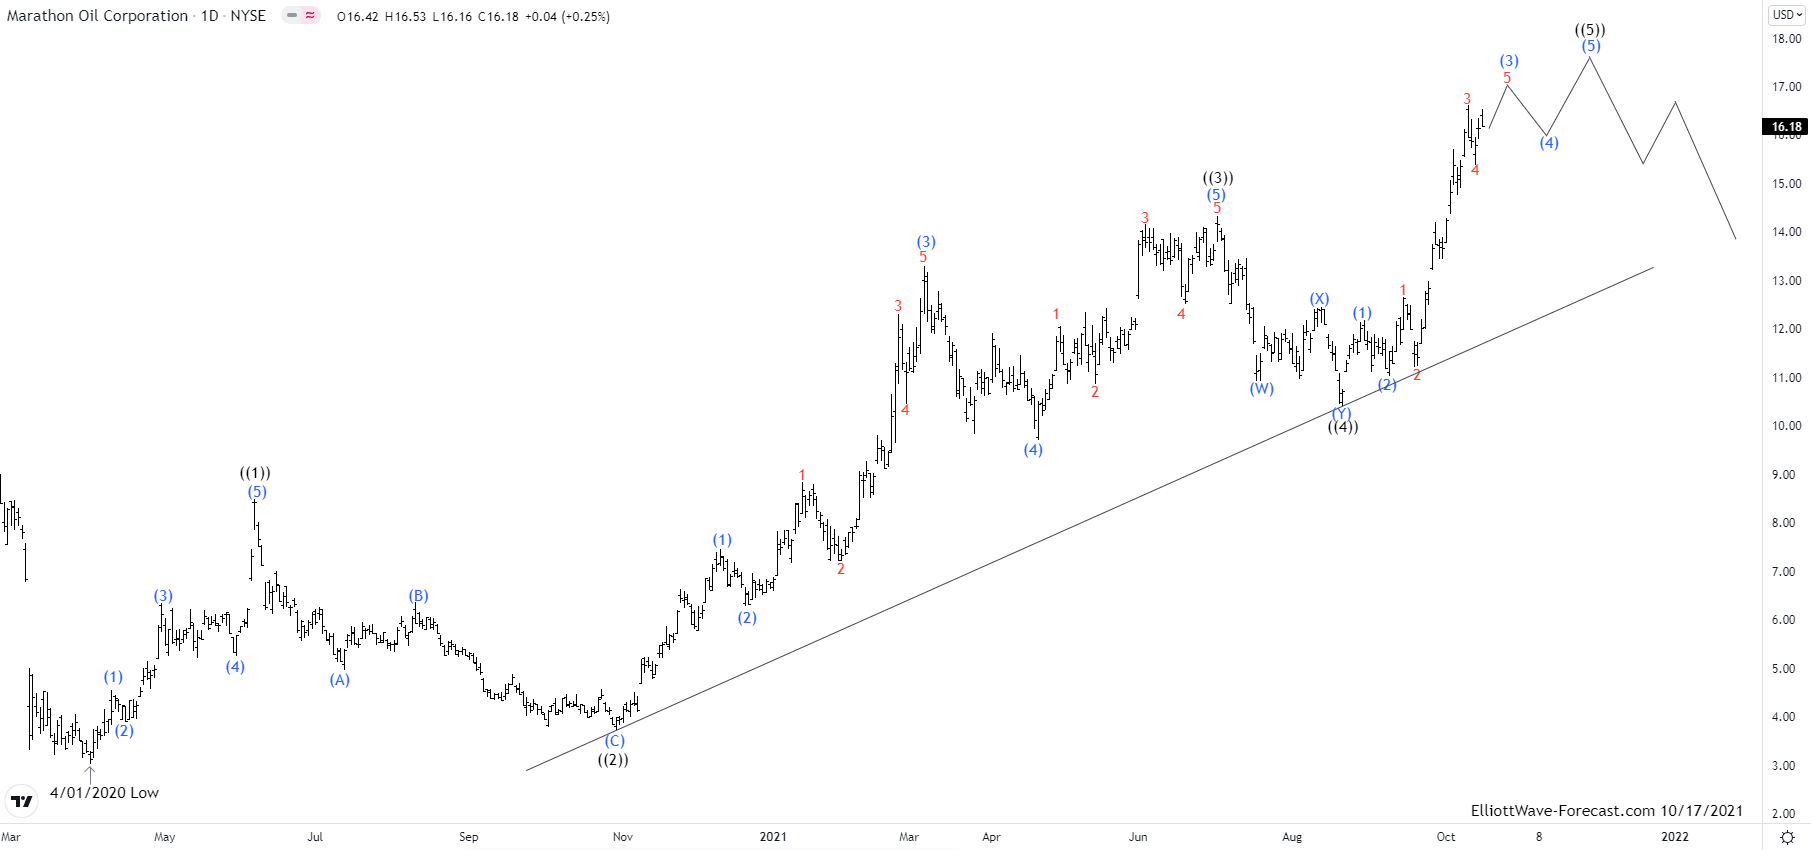 Elliott Wave View: MRO Pullback Should Supported & Extend Higher